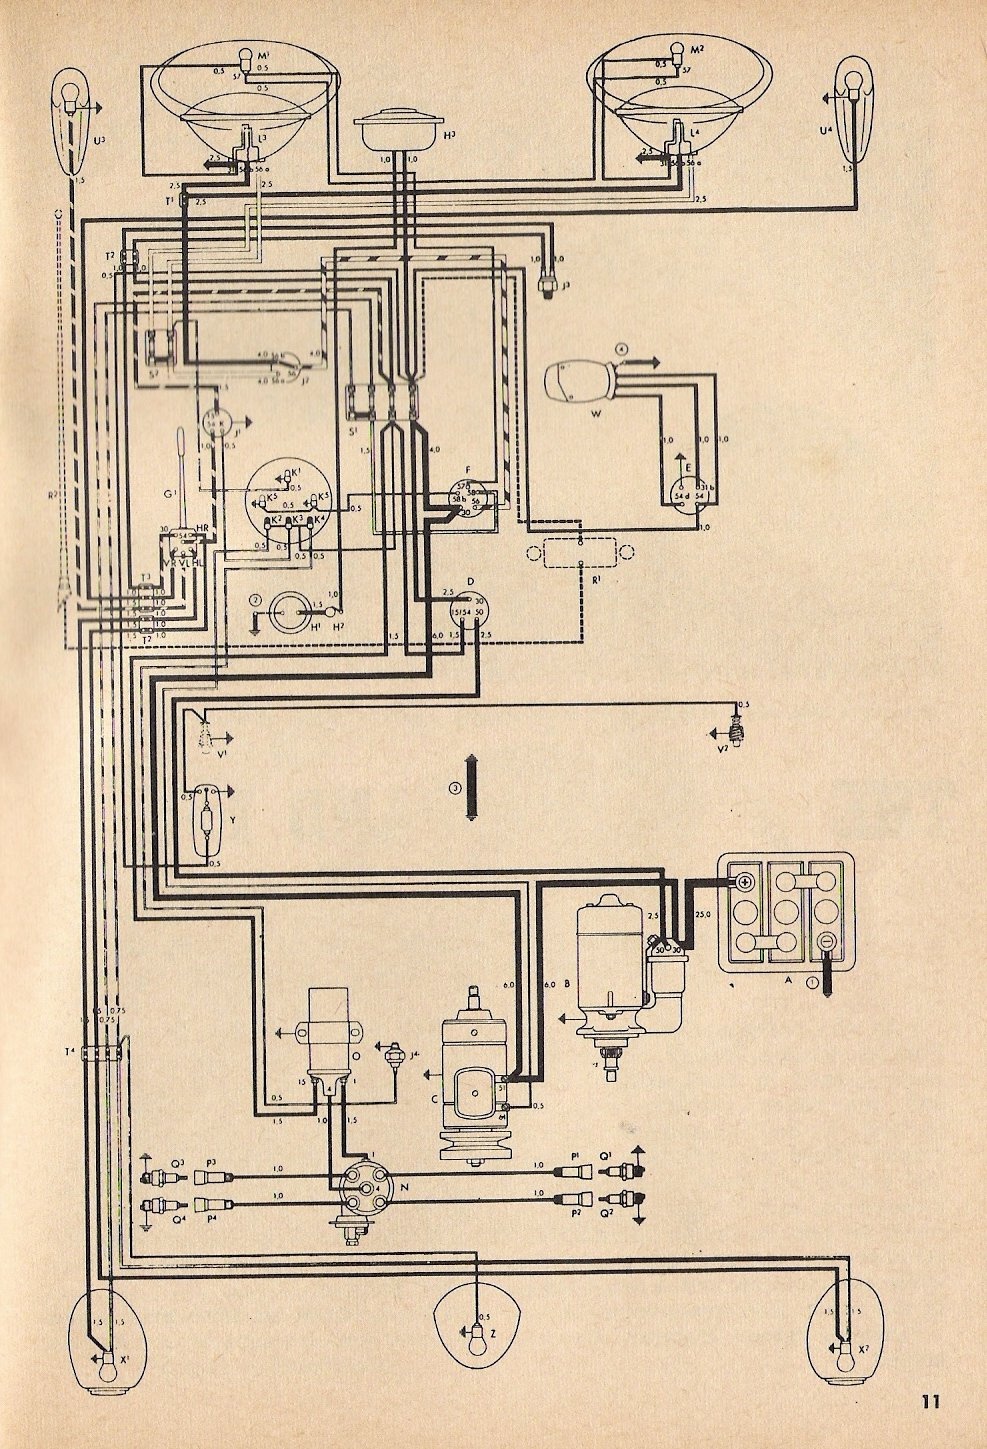 bug_toaug57 1957 beetle wiring diagram thegoldenbug com 1968 vw bug headlight wiring diagram at metegol.co